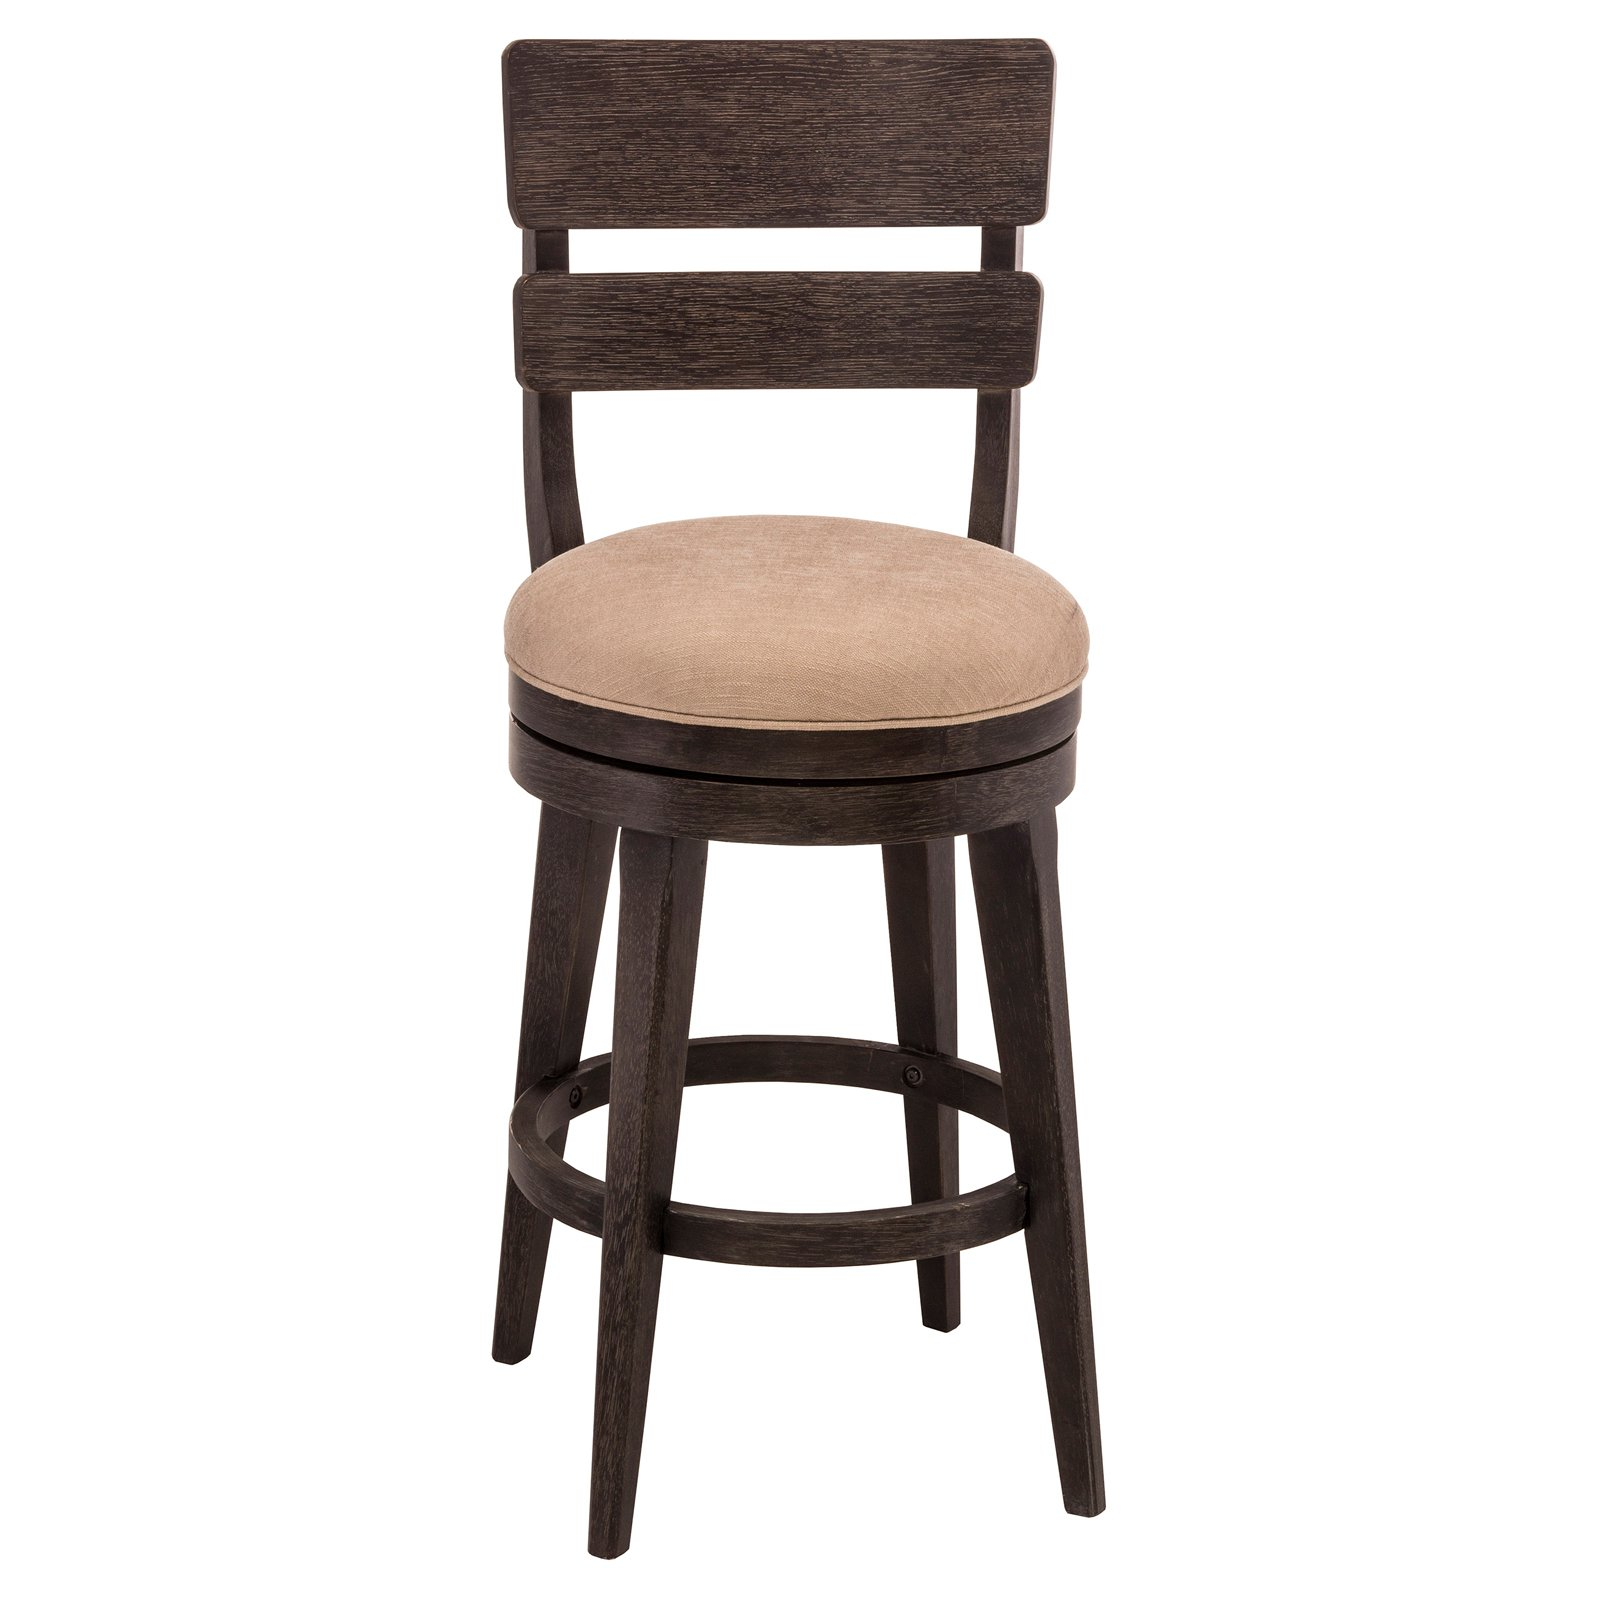 Leclair Swivel Bar Stool, Black Wire Brushed Finish by Hillsdale Furniture